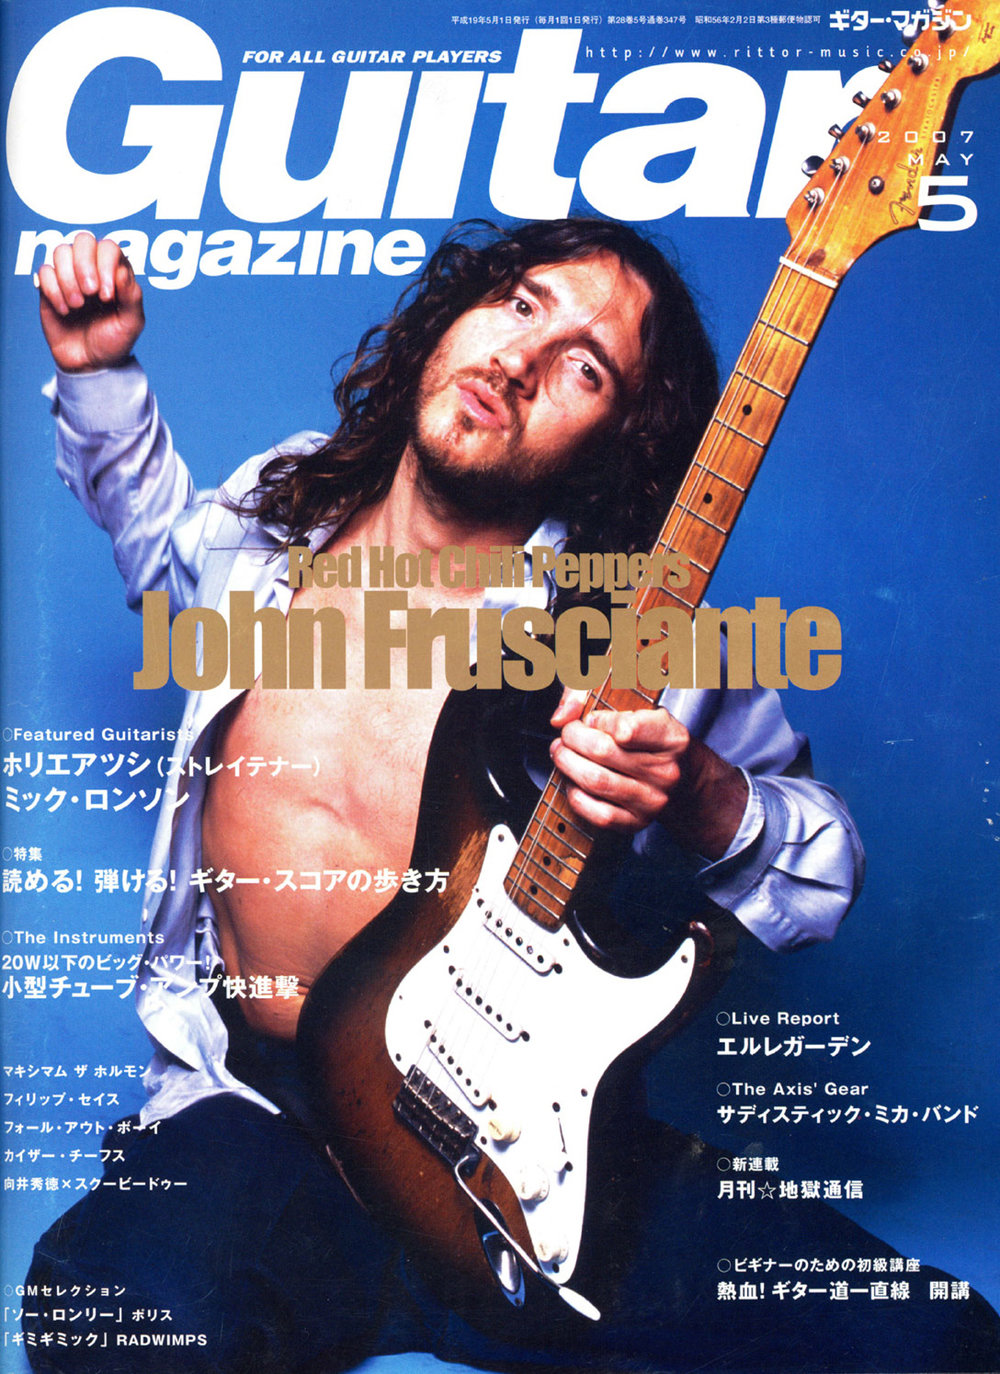 Copy of 2007 Guitar Magazine